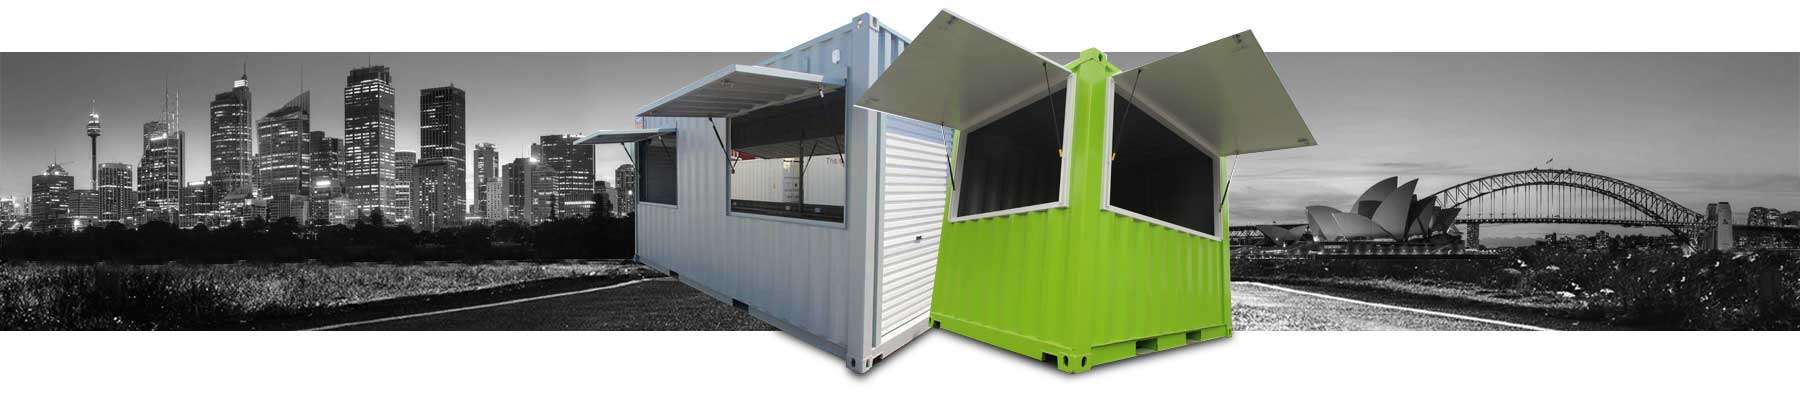 shipping-containers-sydney-popup-shops-001